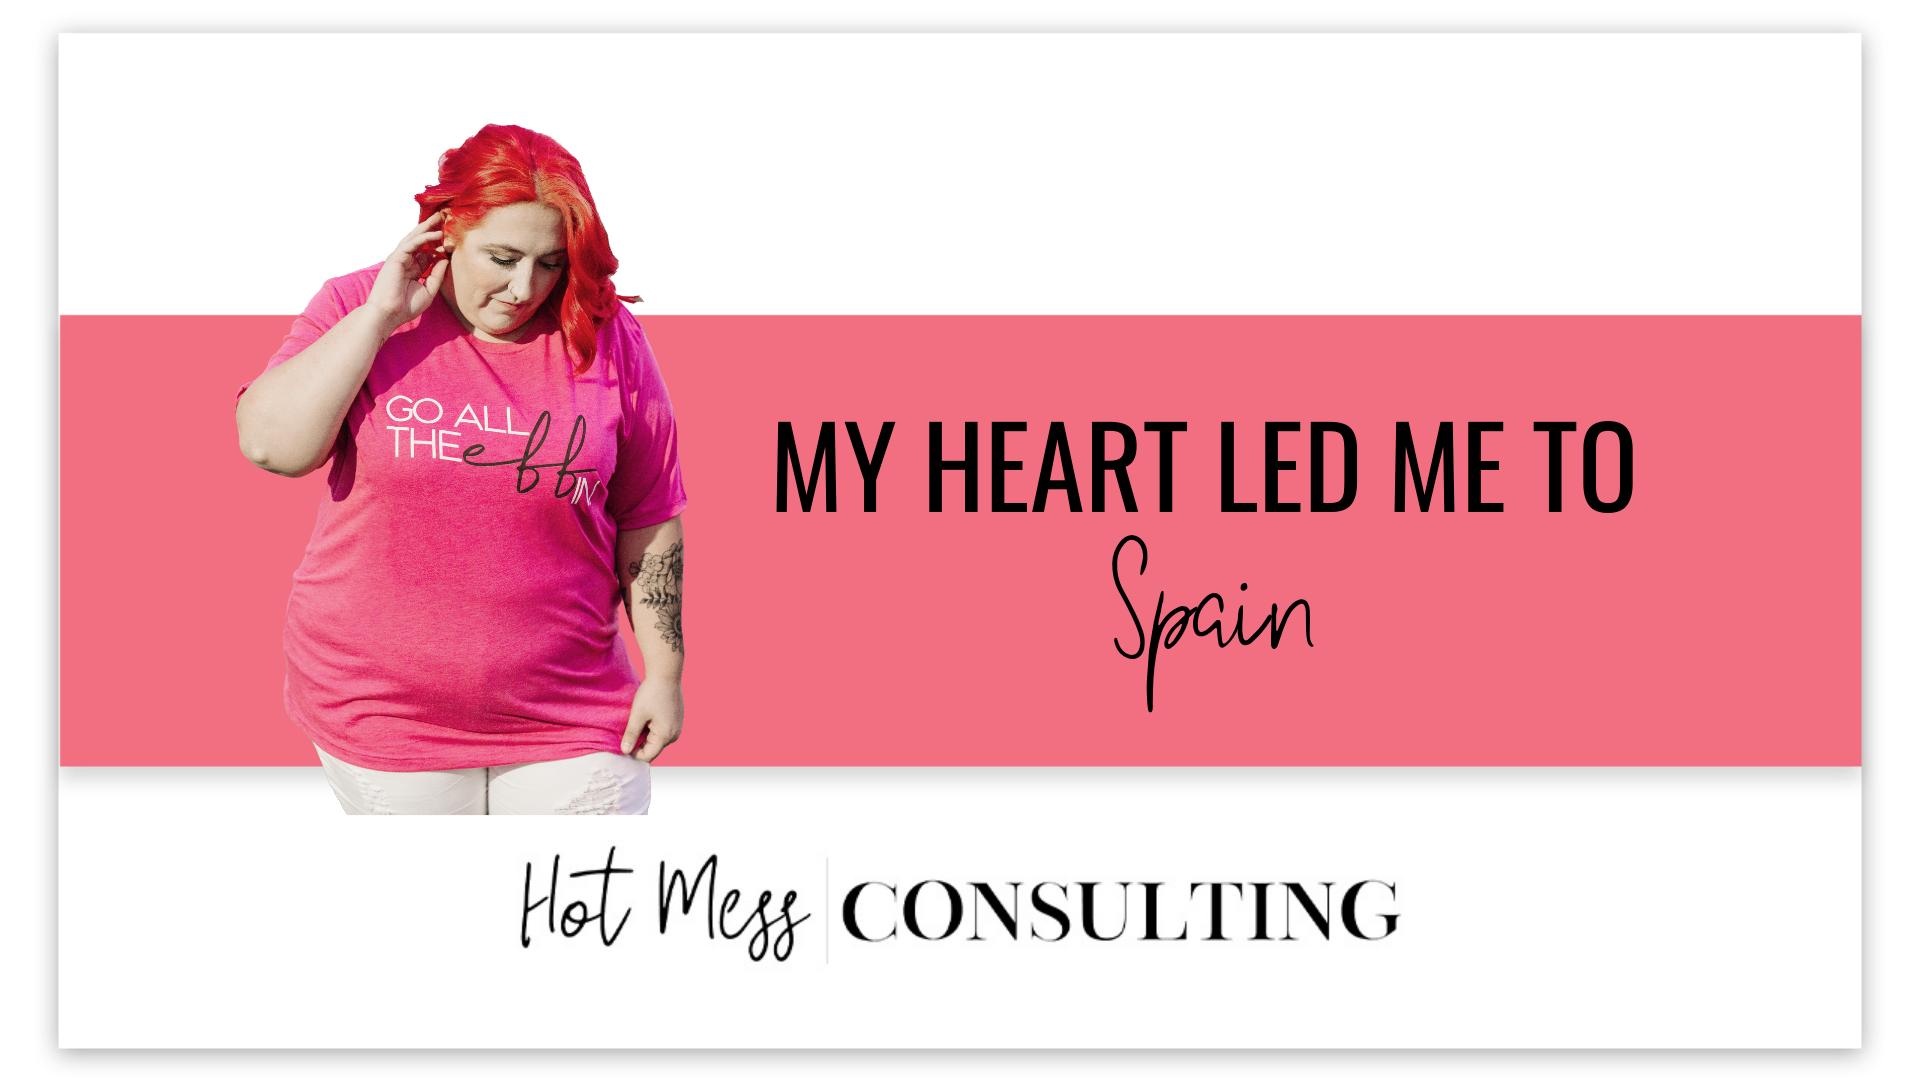 My Heart Led Me to Spain